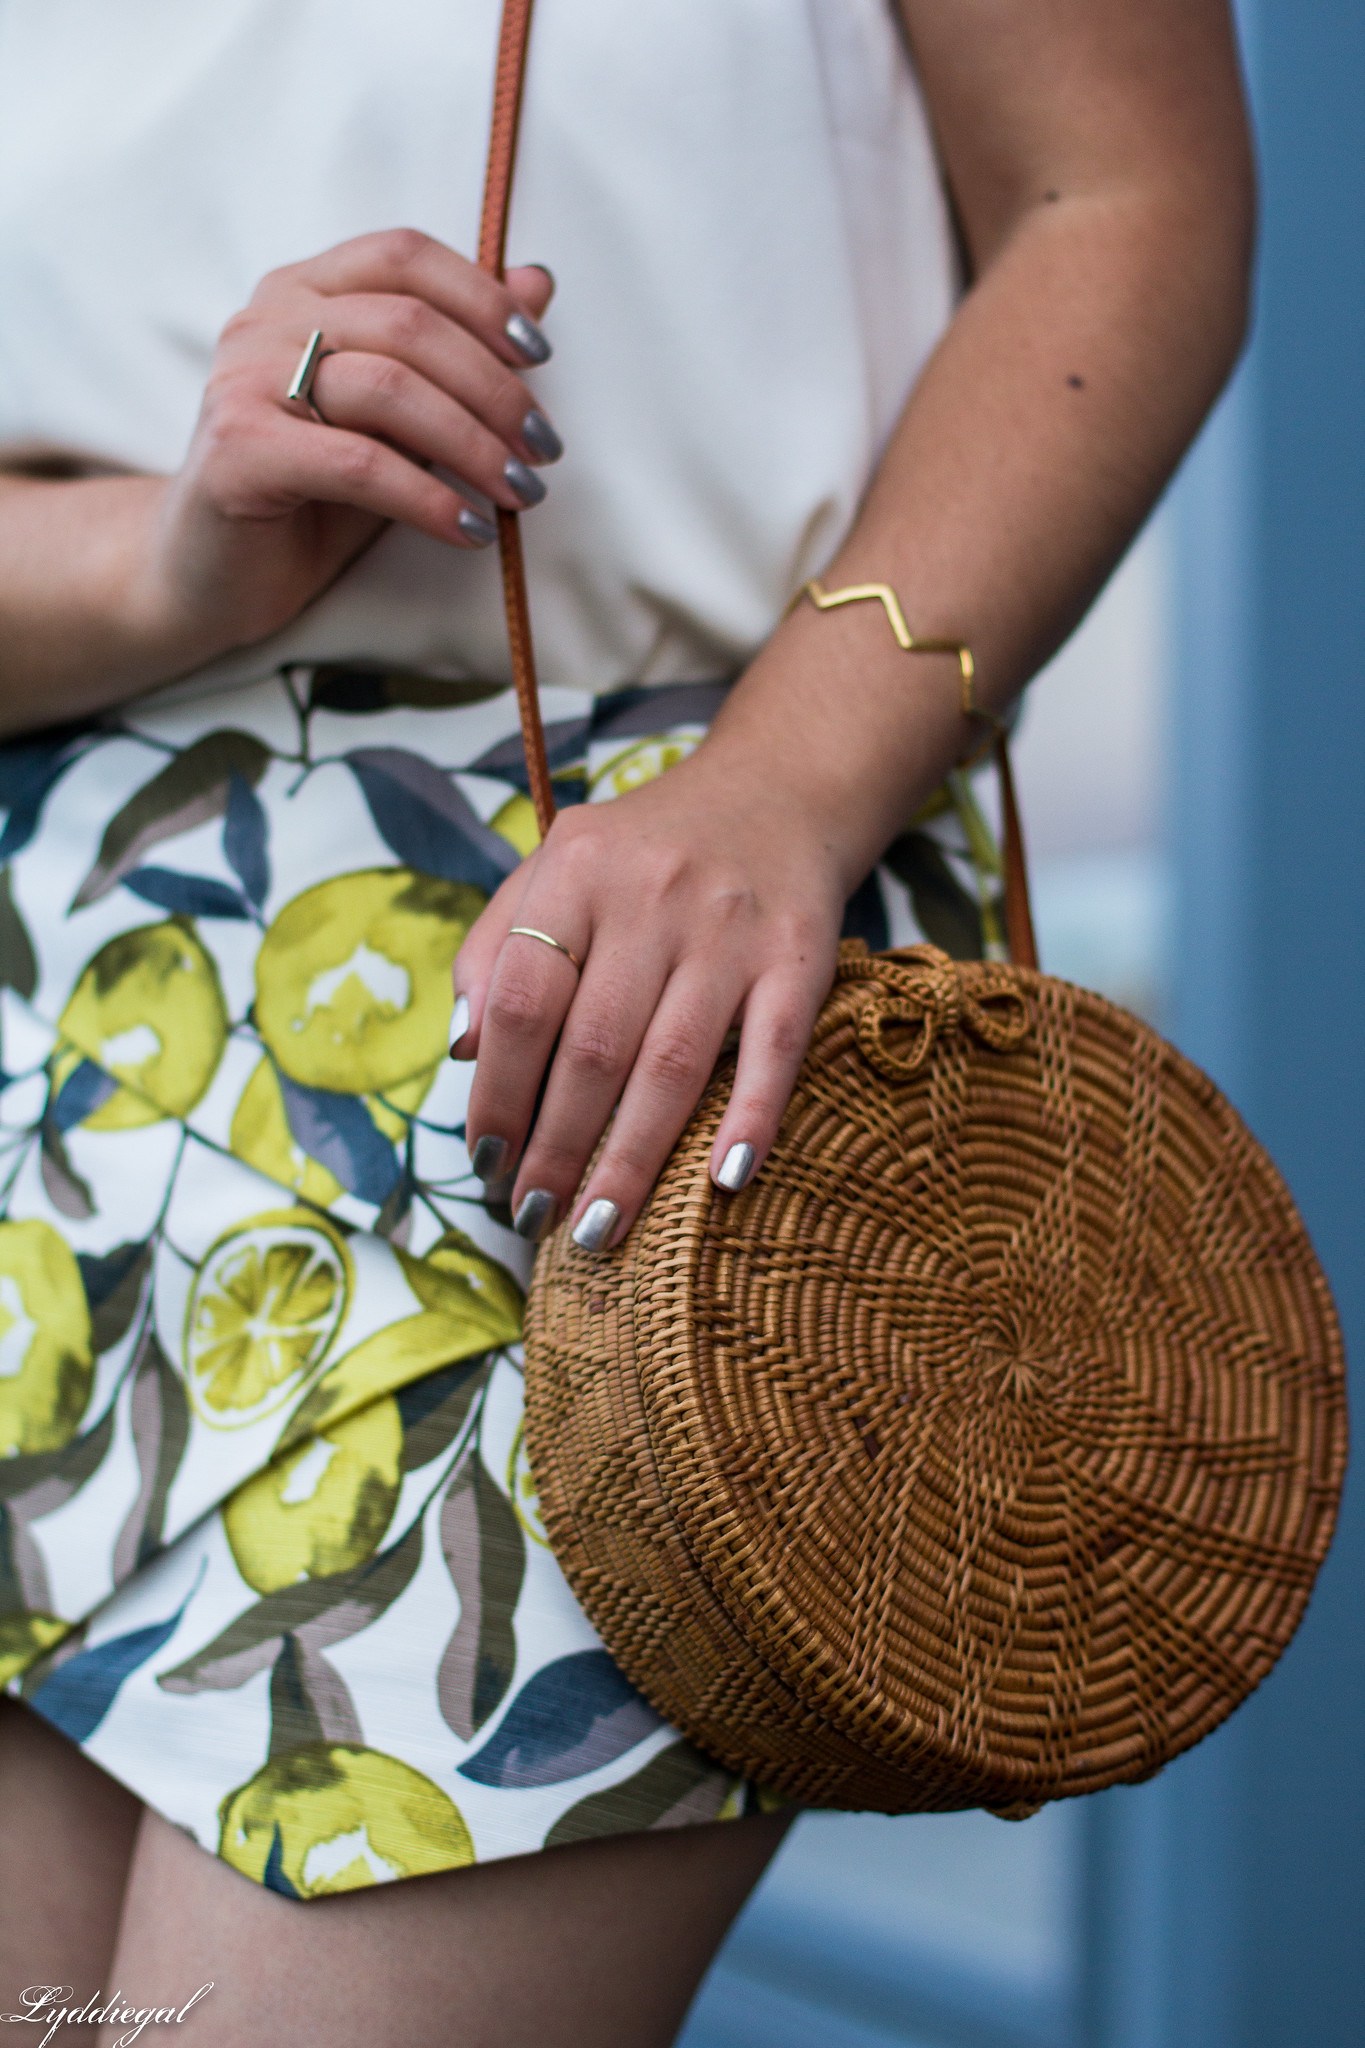 Lemon print skort, scalloped cami, round straw bag, ferragamo slides-10.jpg